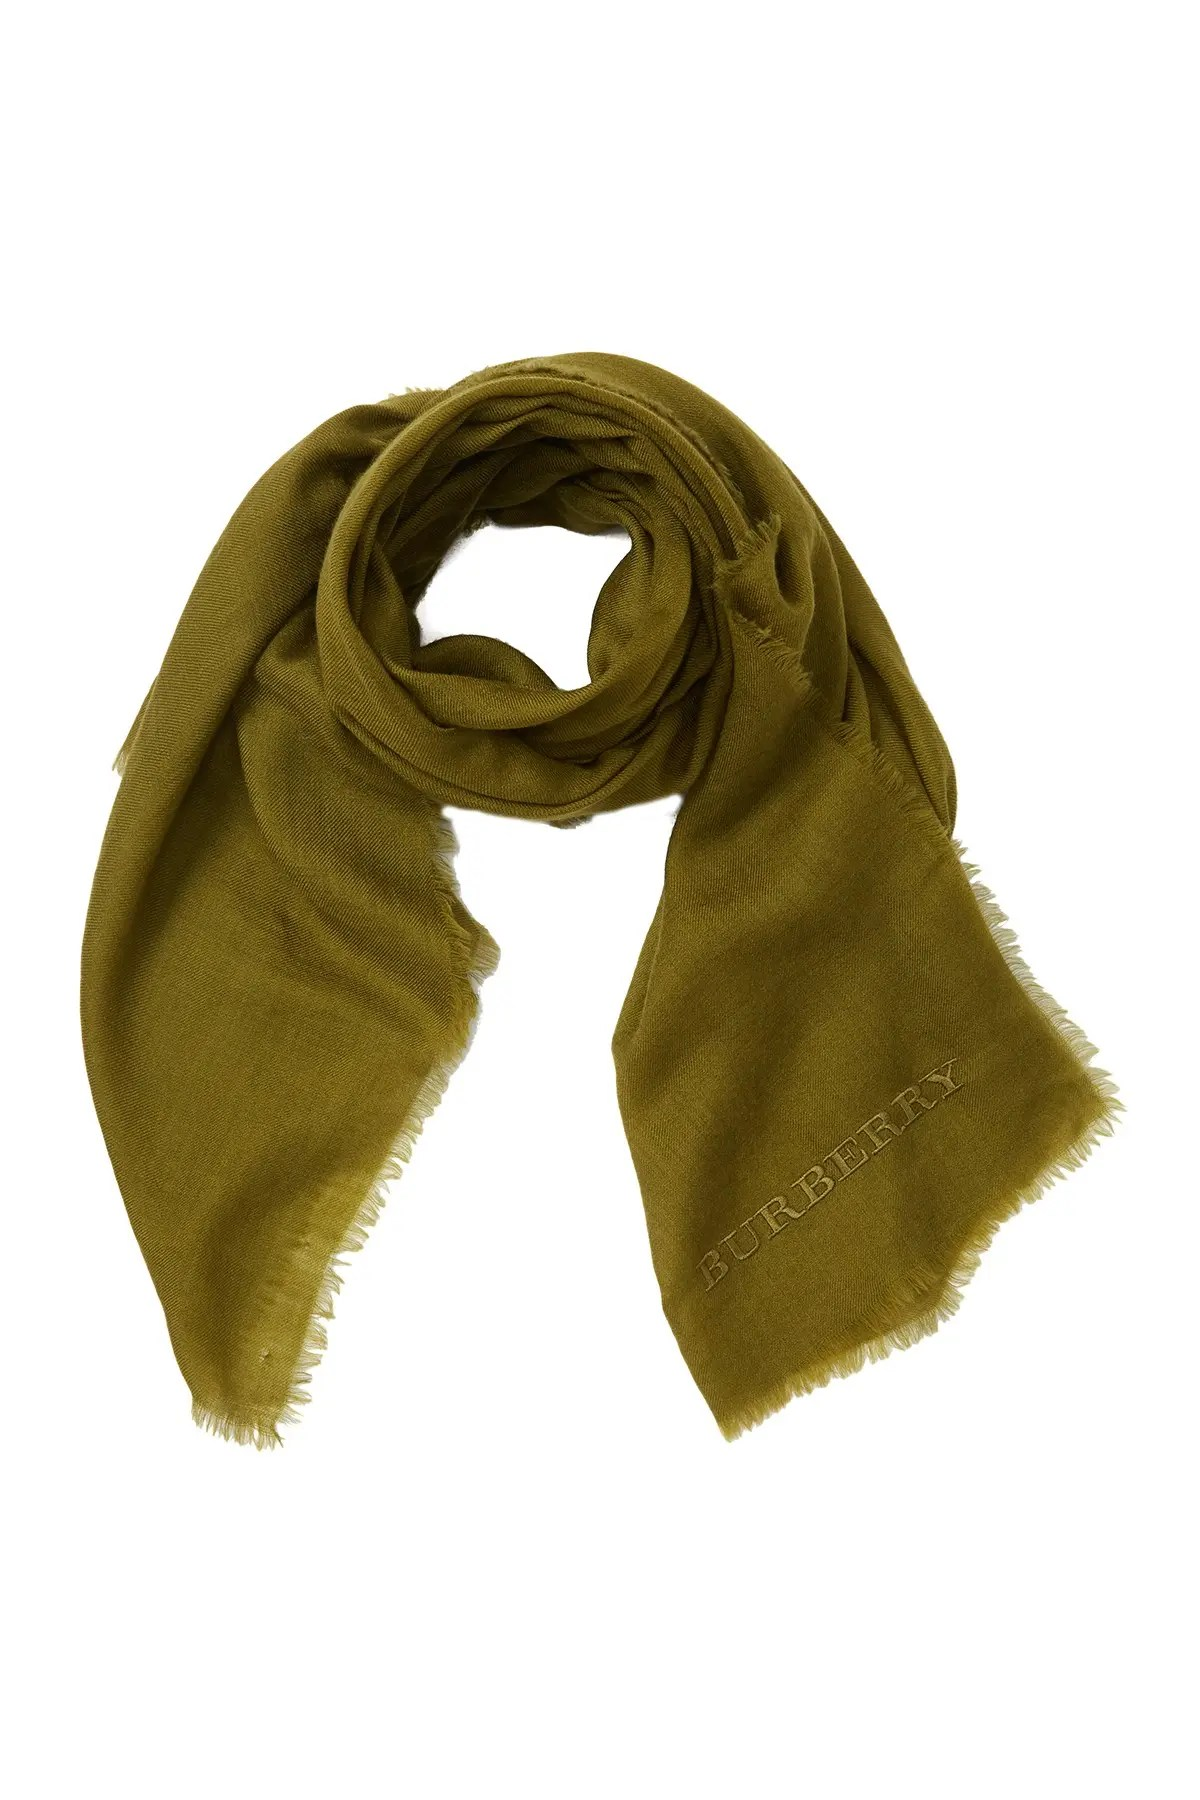 burberry solid embroidered logo cashmere scarf nordstrom rack